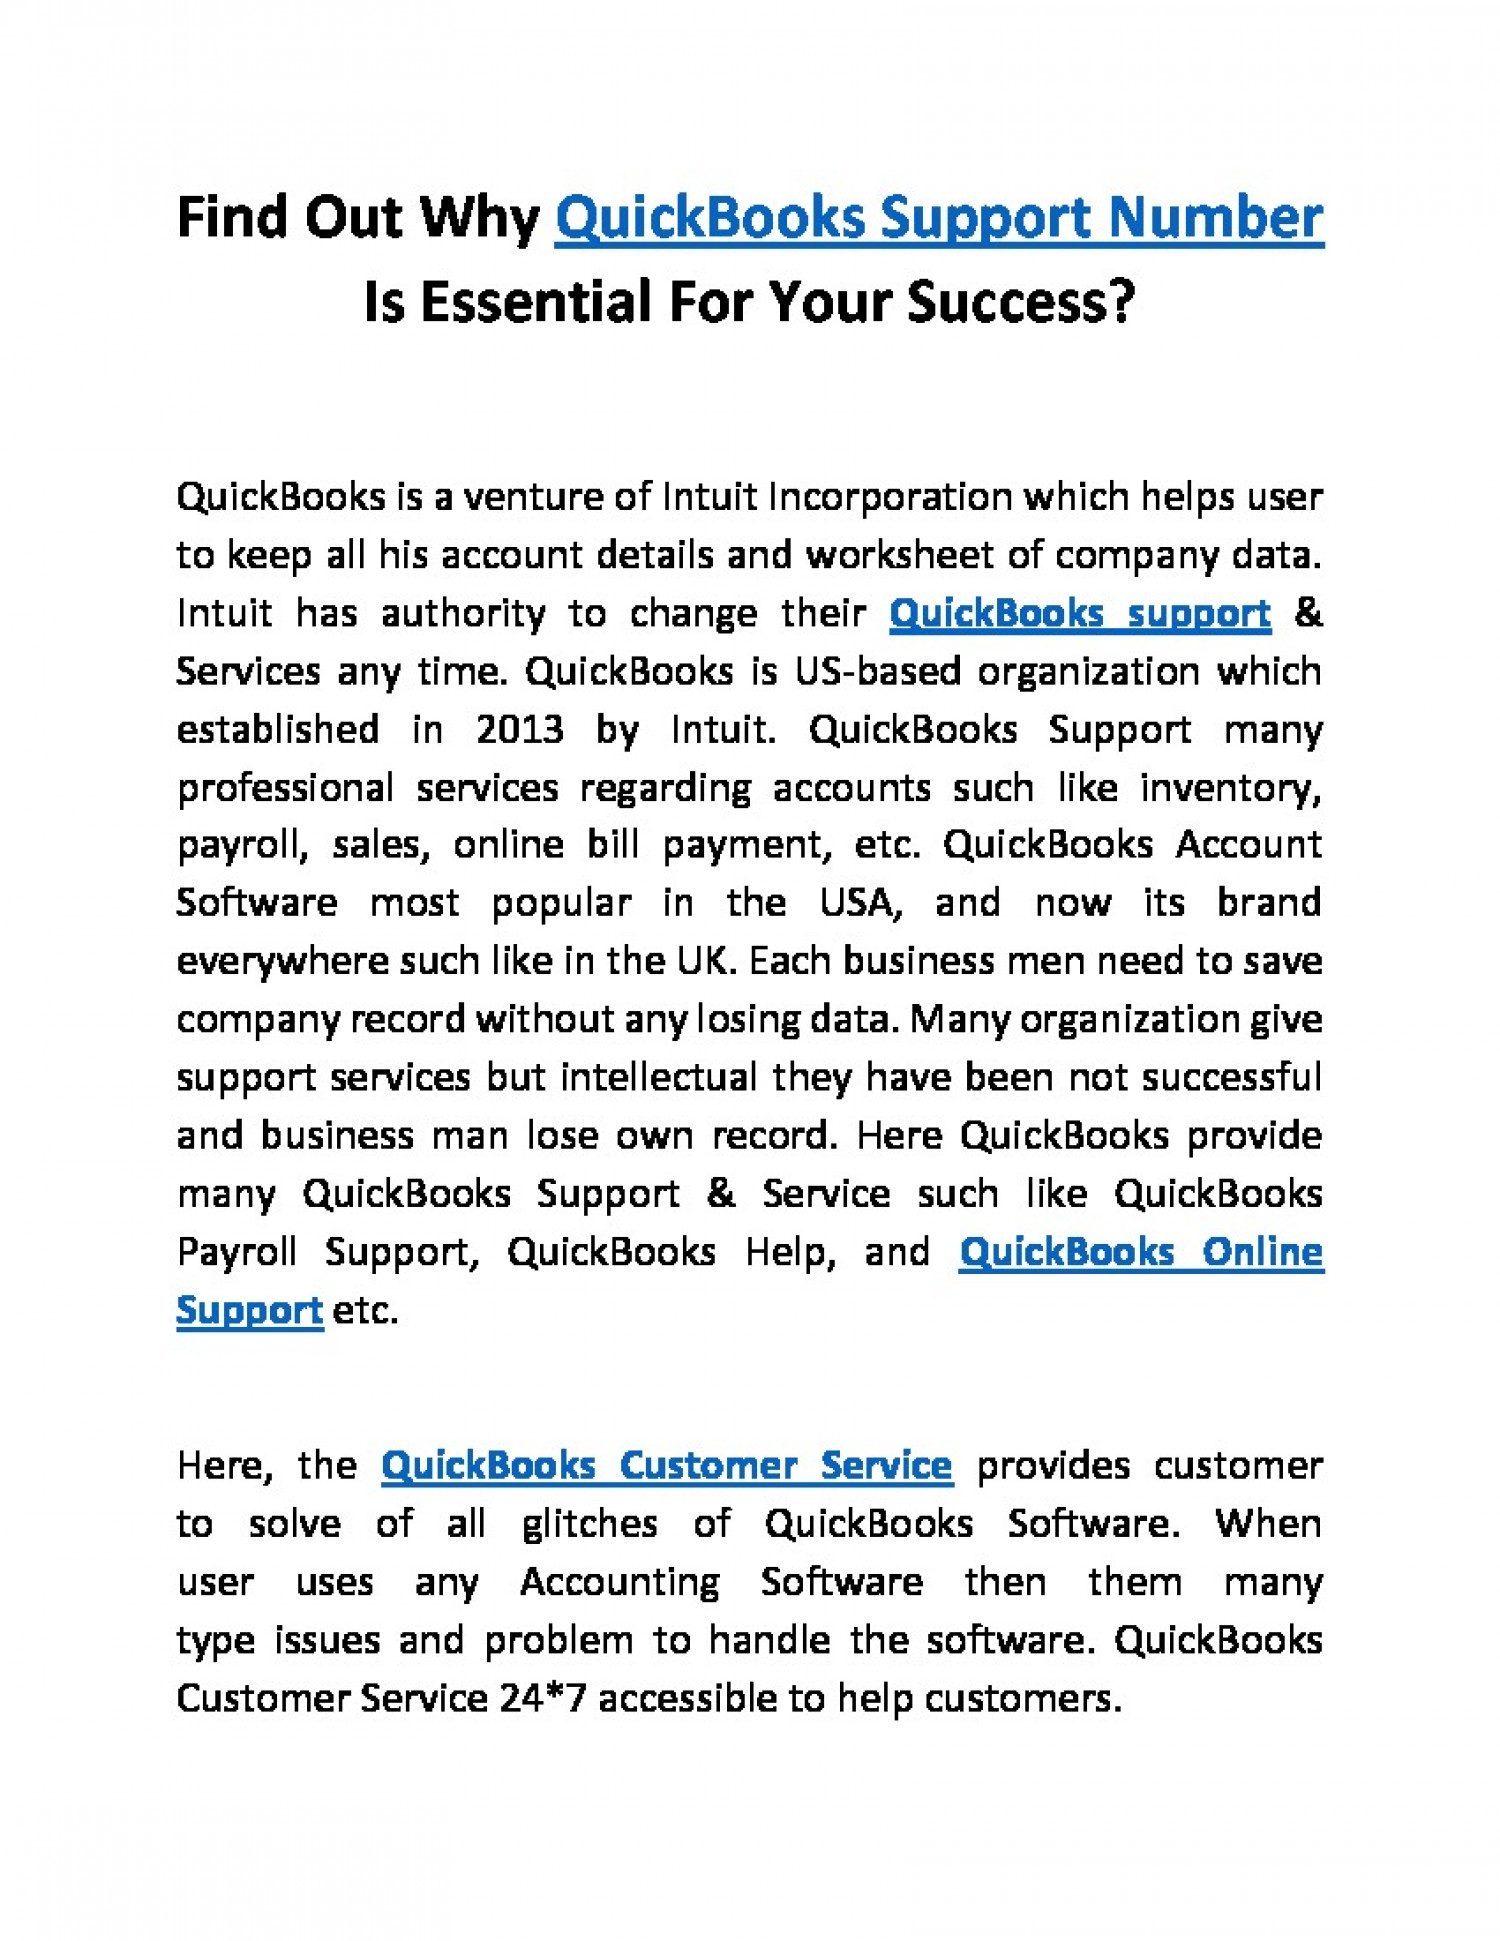 Get Assistance with QuickBooks Support +1-800-518-1838 Infographic